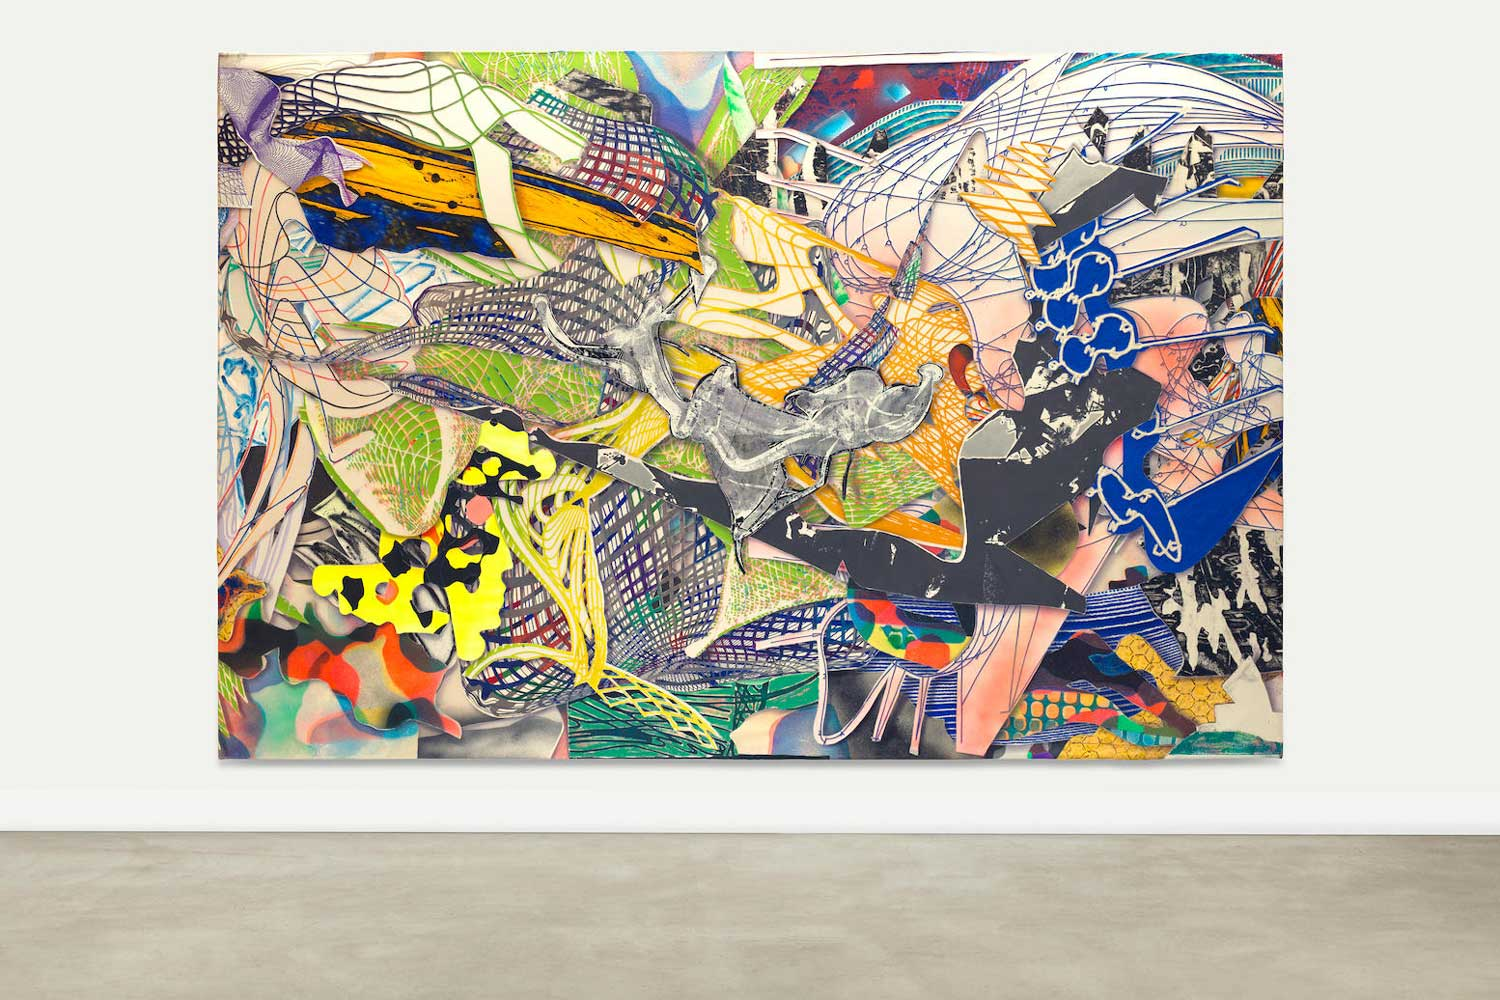 Frank Stella's Karpathenburg II, 1996; mixed media on canvas; 297.2 x 458.5cm; the artwork, in typical inclination of Frank Stella's use of exuberant colors, sold with Bonhams in New York November 15, 2016 for USD 277,500 (Image: bonhams.com)